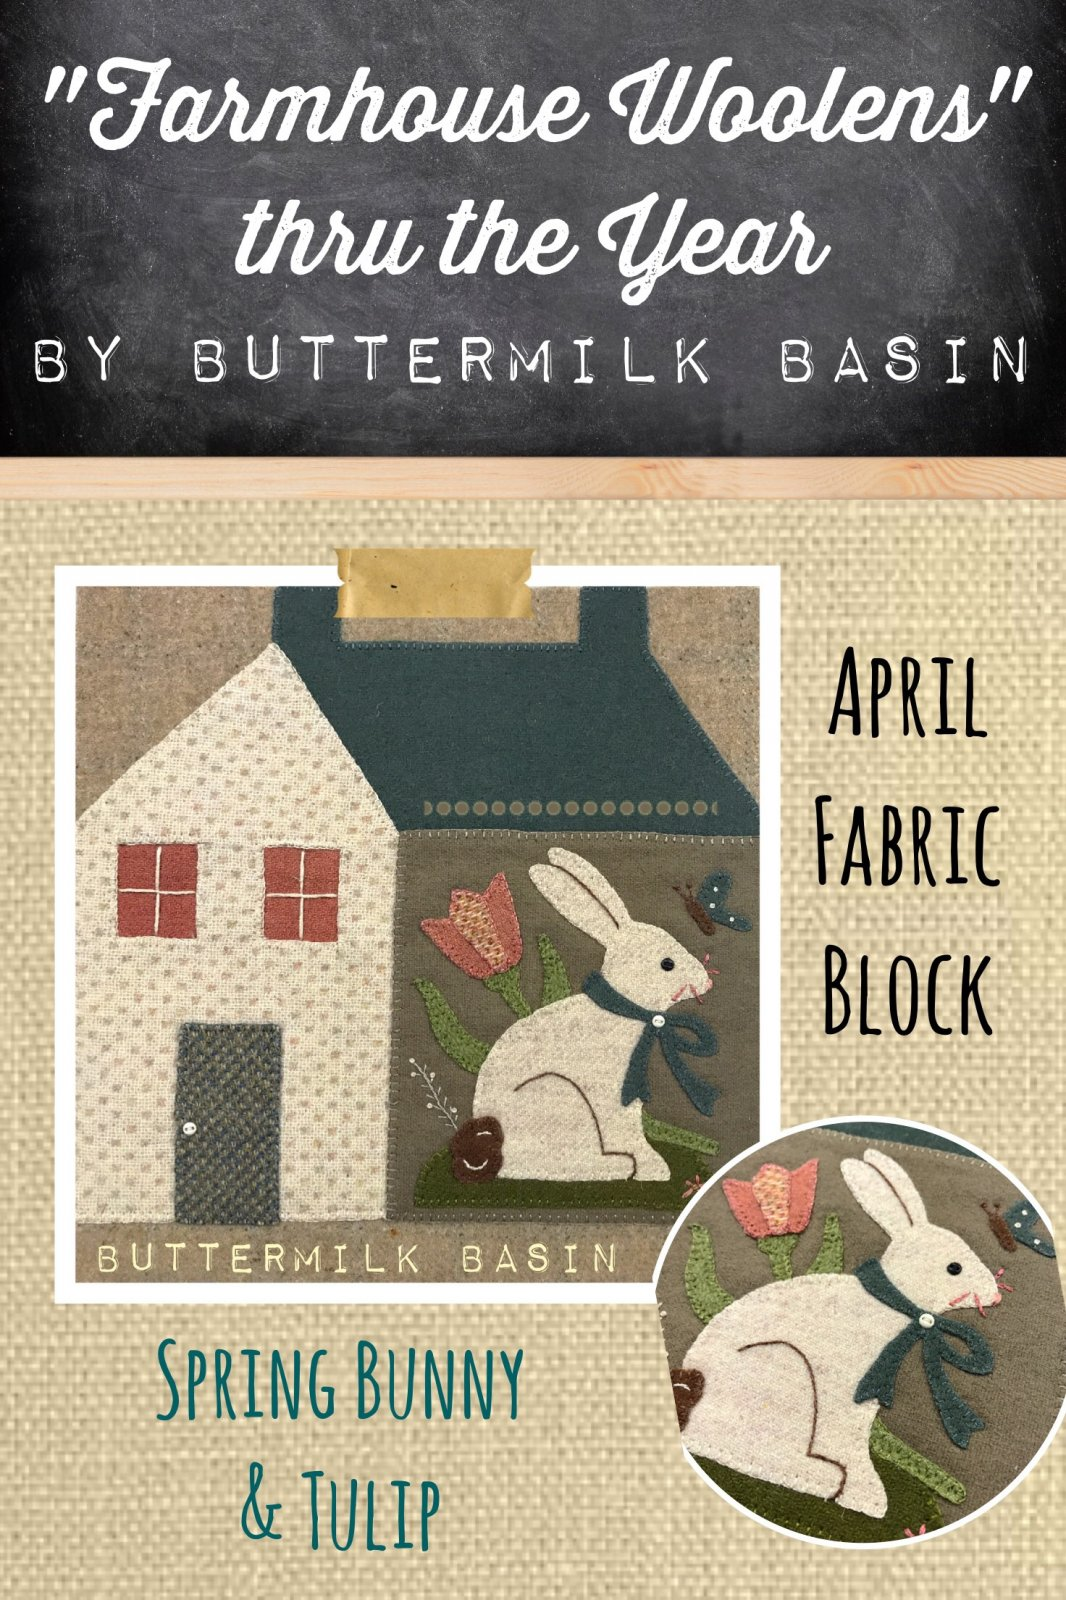 Farmhouse Woolen Quilt Block of the Month * APRIL KIT & Pattern